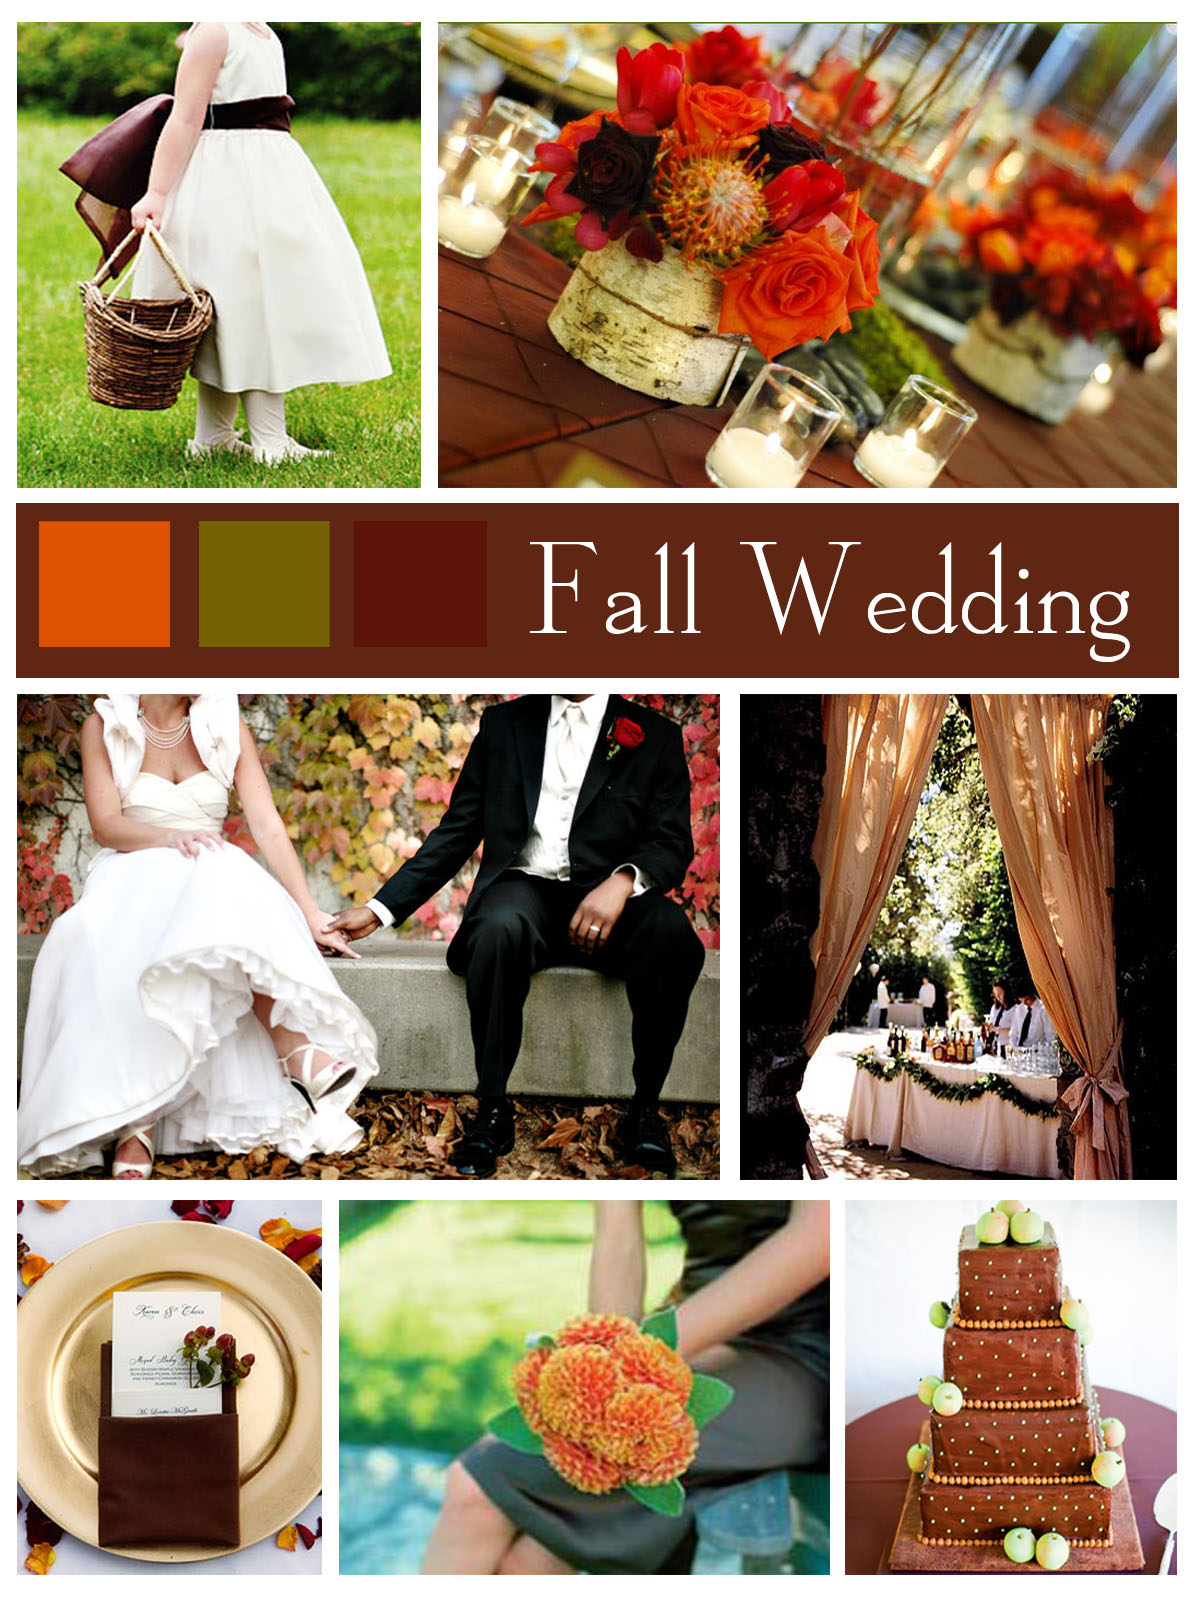 Planning Fall Themed Wedding - Happyinvitation.com ...